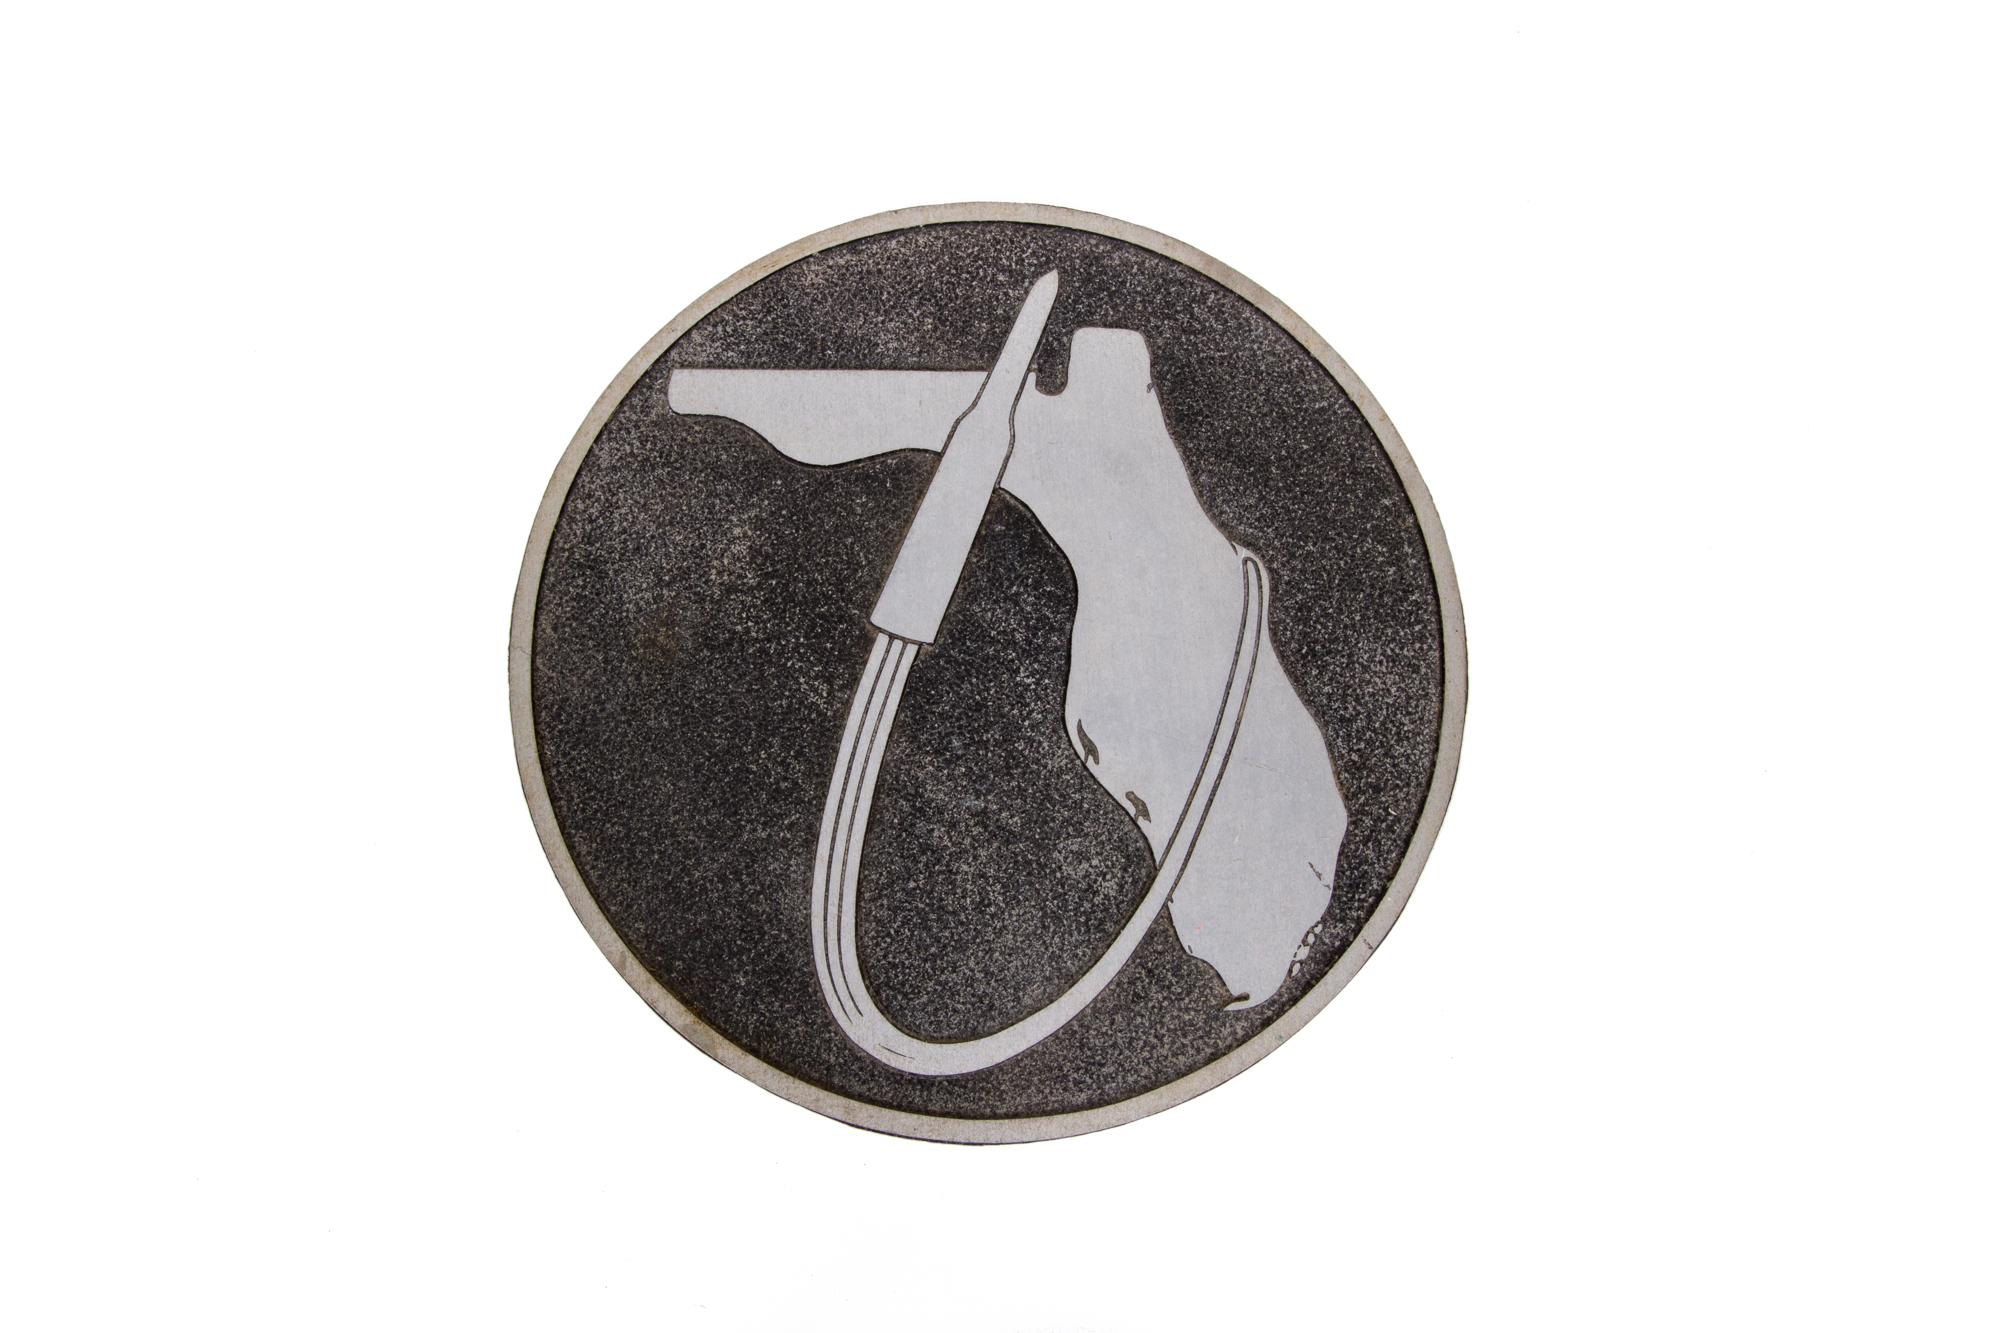 Road Sign Medallion – from highway sign along the Florida Space Coast (circa 1965)